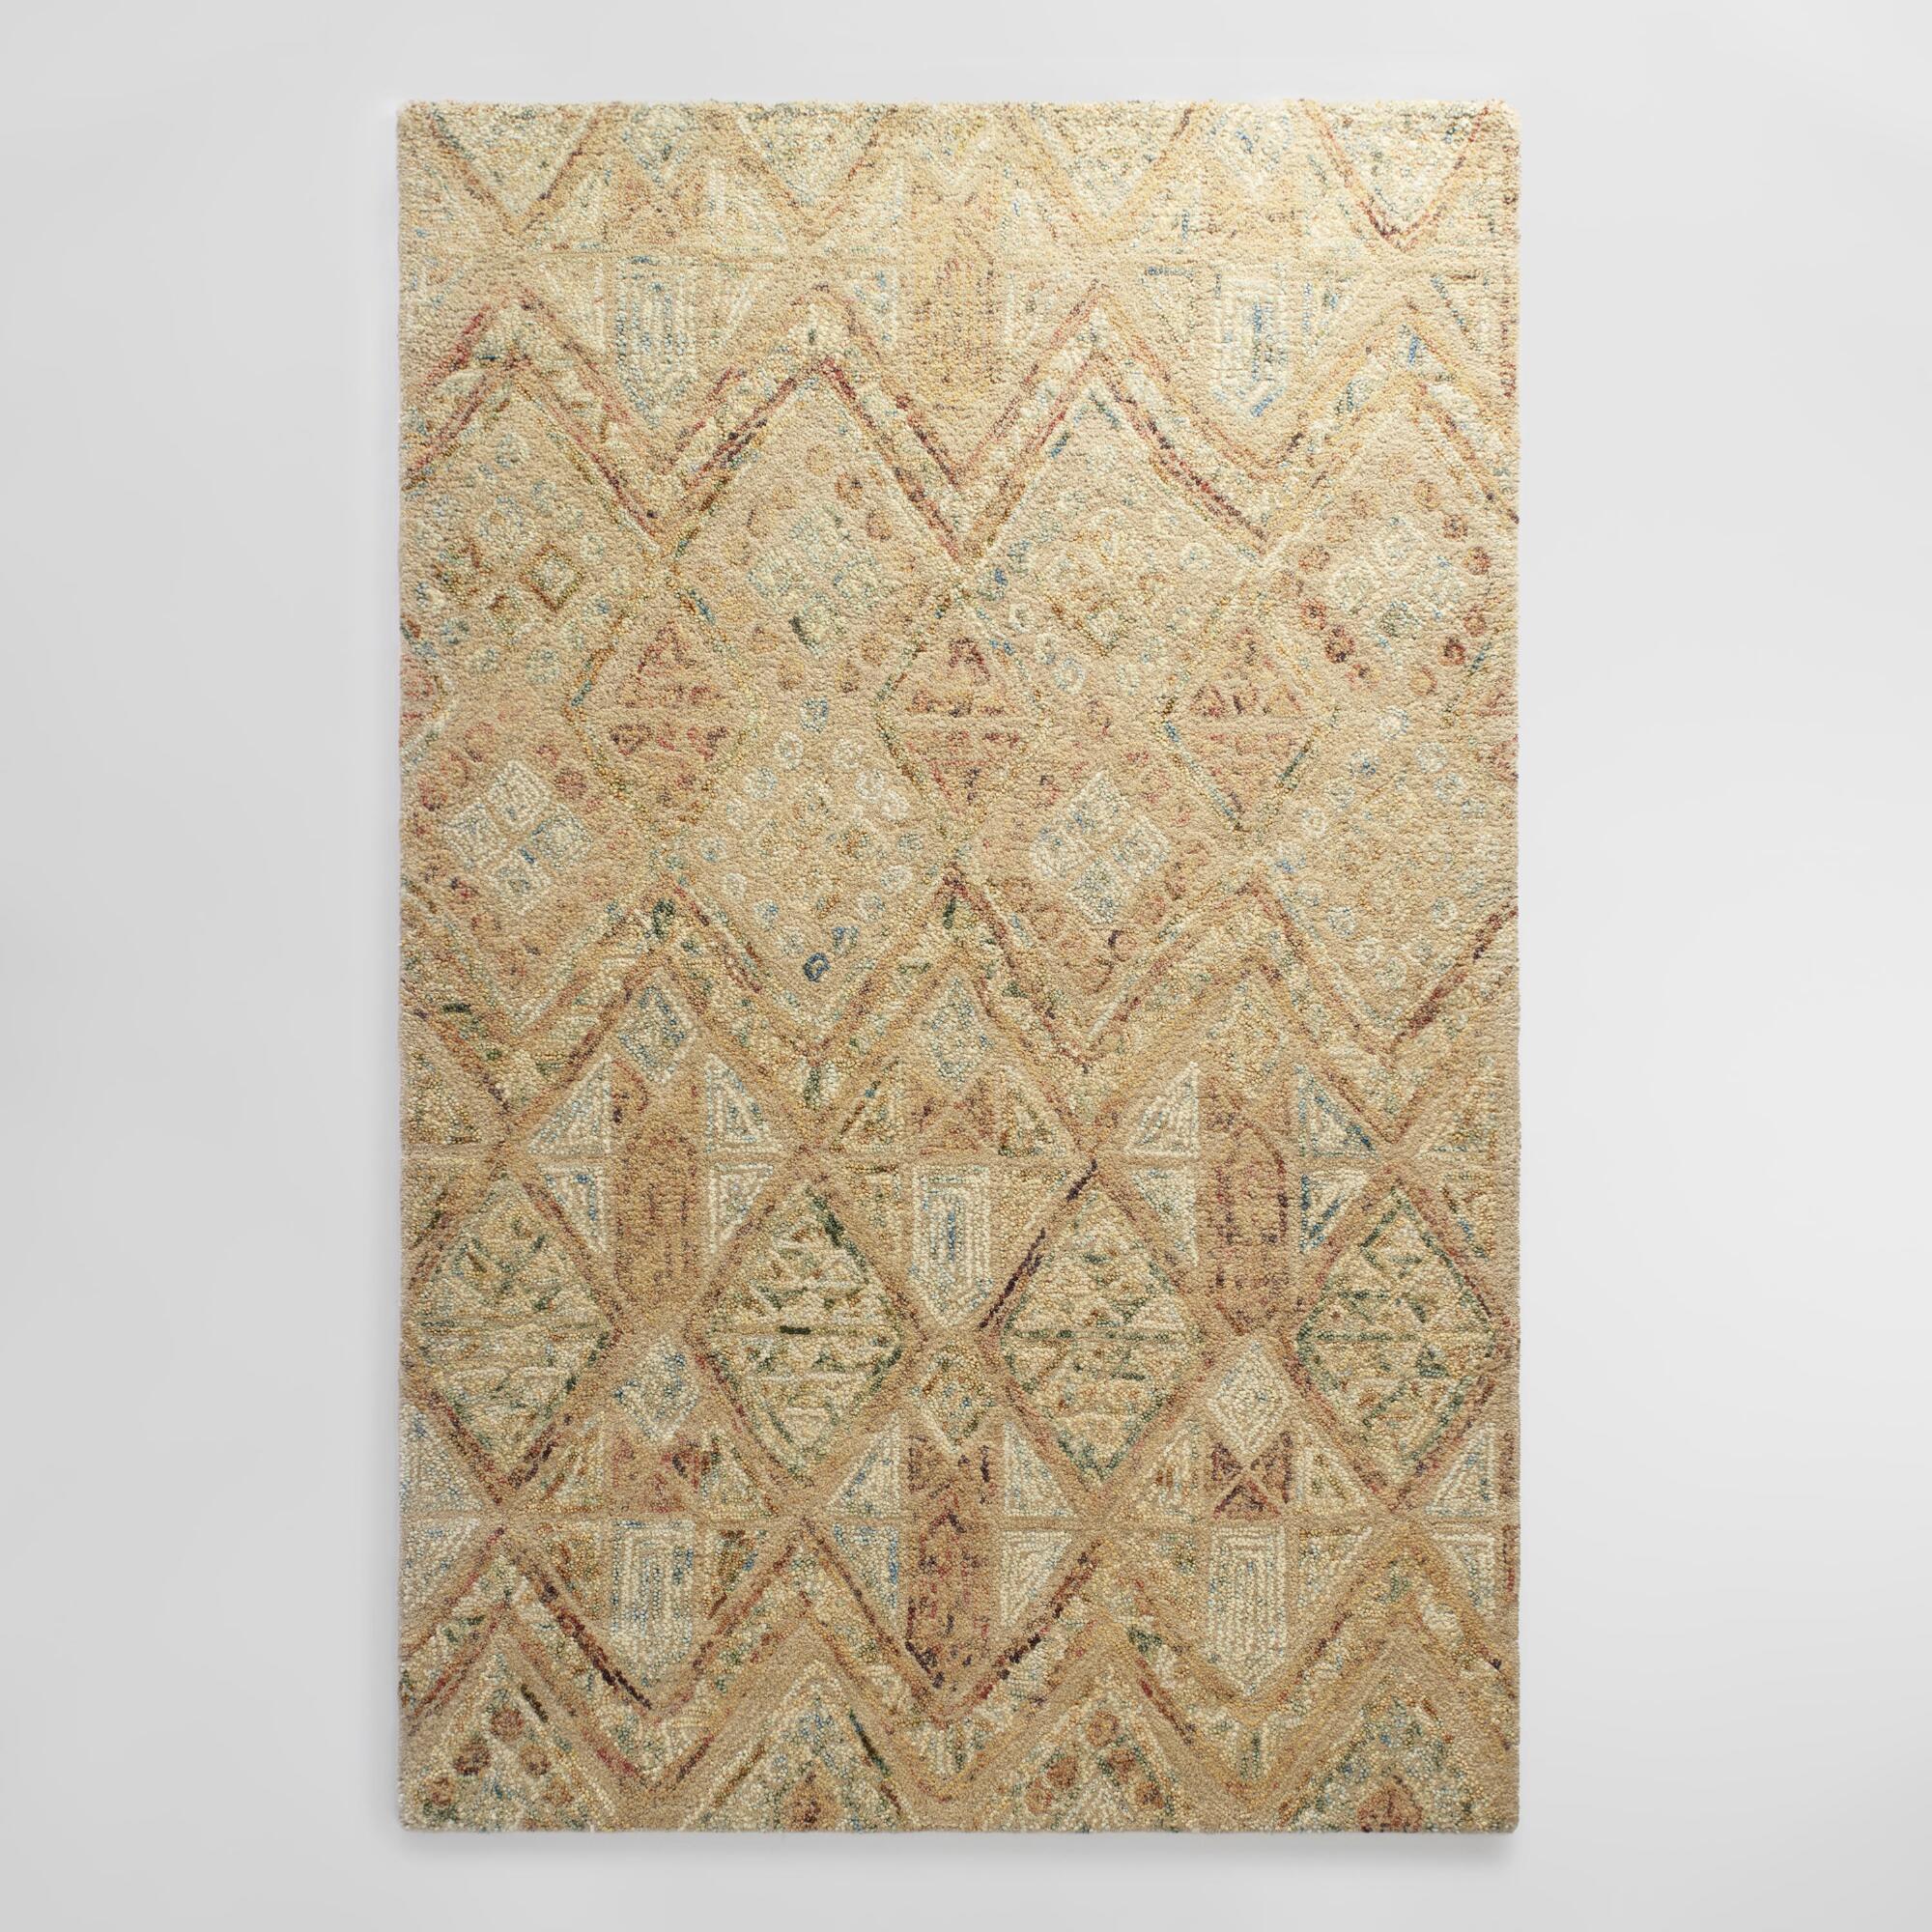 Light Brown Tufted Wool Maris Area Rug: Blue/Brown - 8' x 10' by World Market 8Ftx10Ft